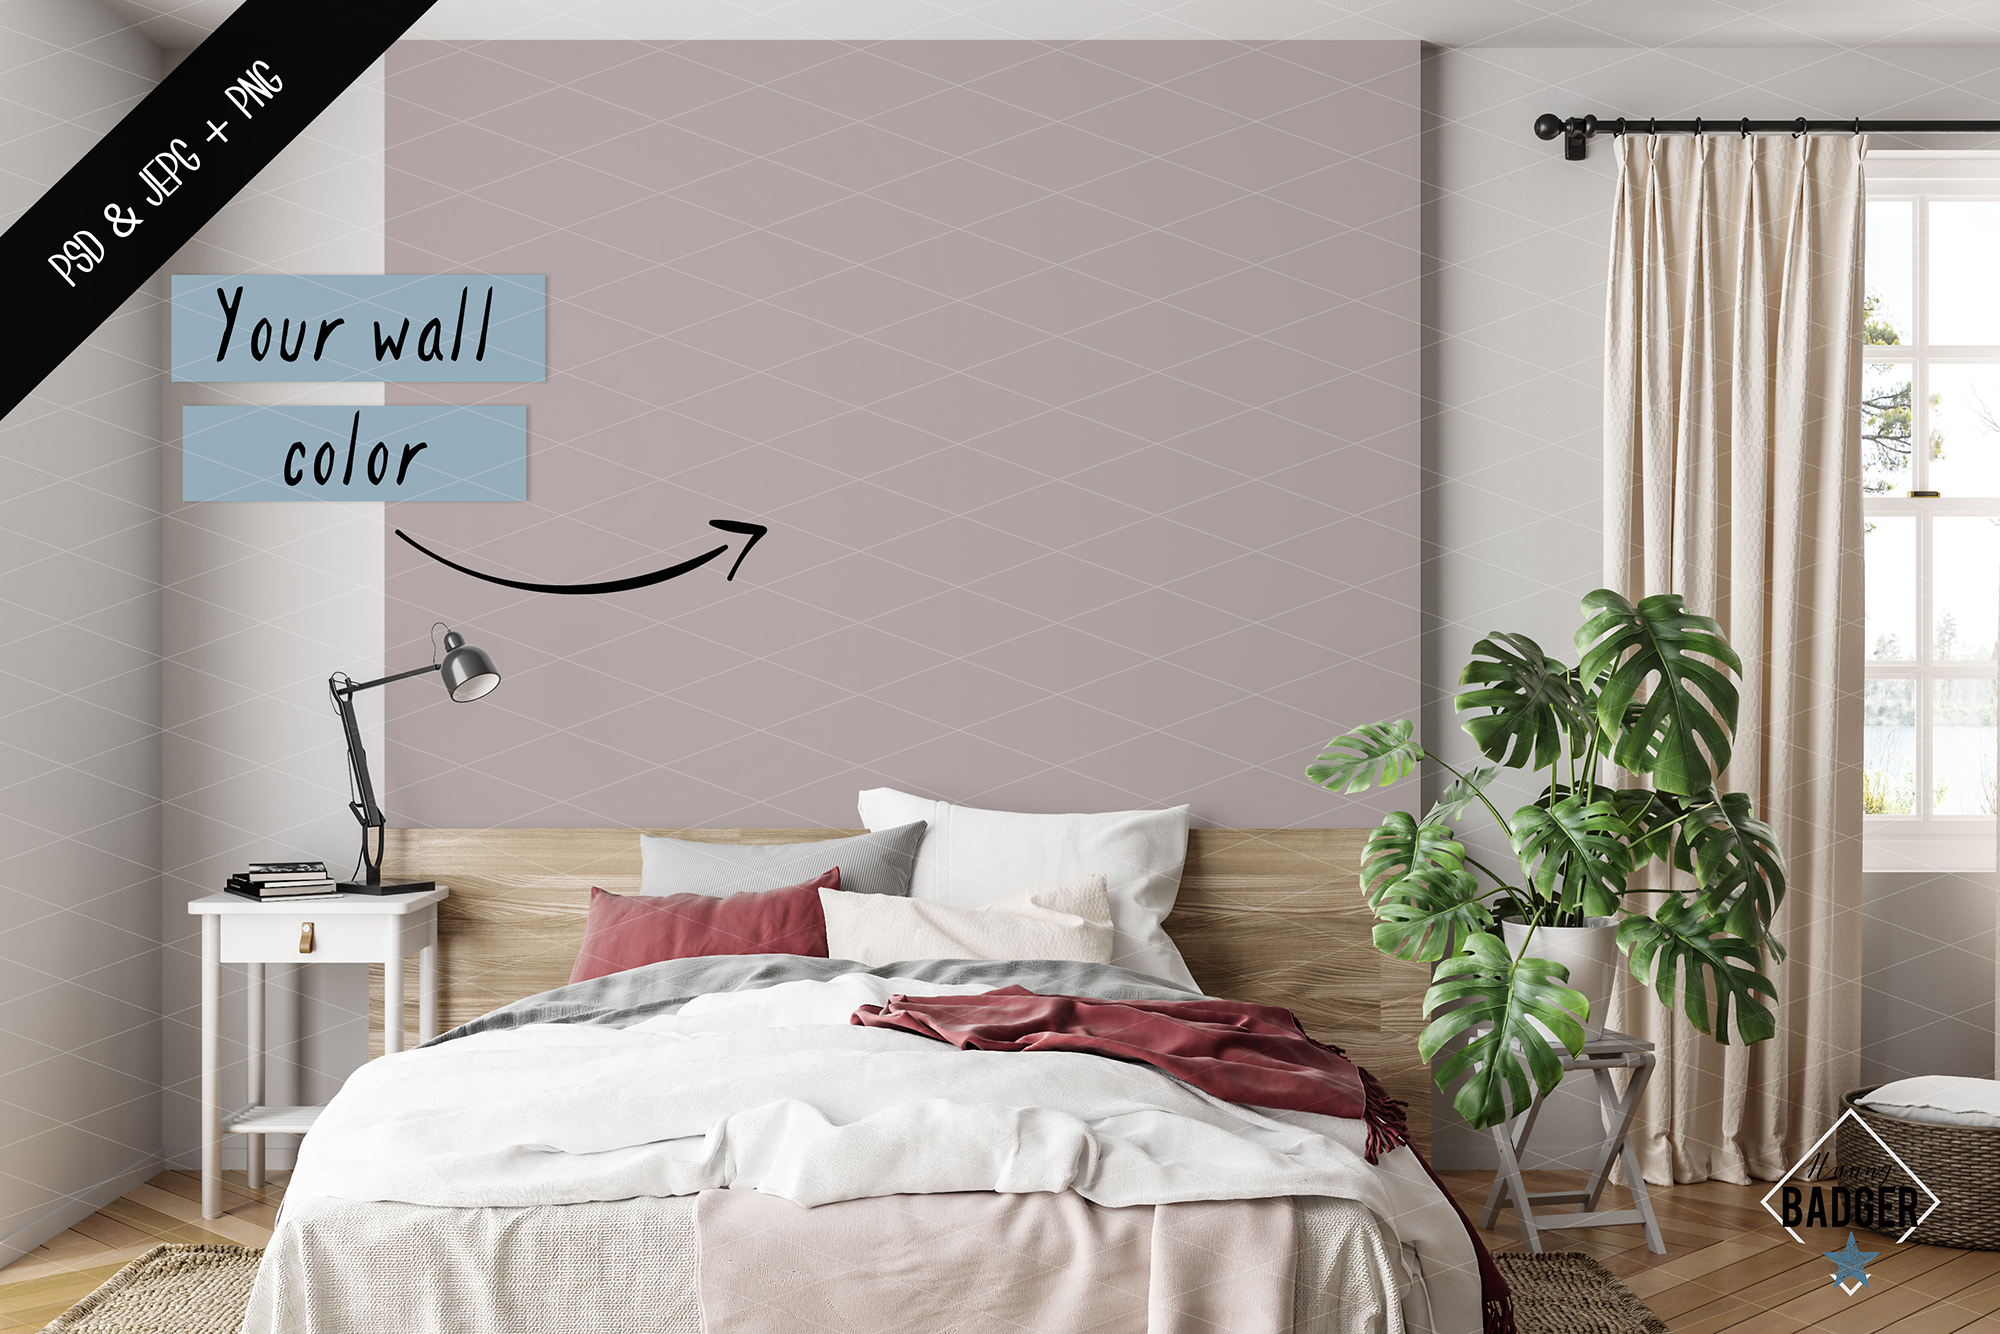 Wall mockup - Wallpaper mockup example image 5